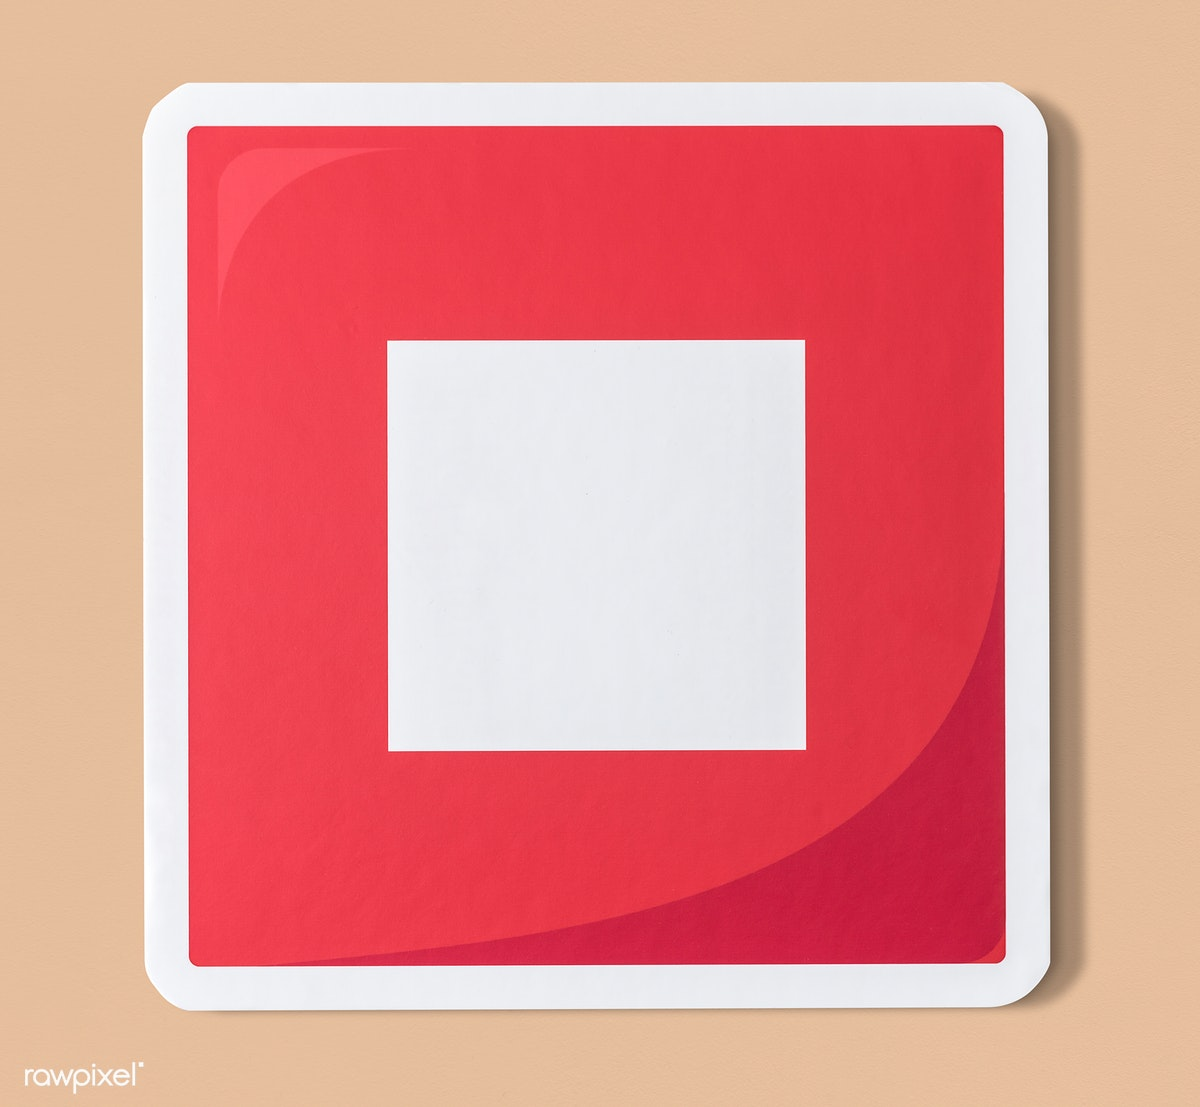 Download premium psd of Red stop button music icon 402428